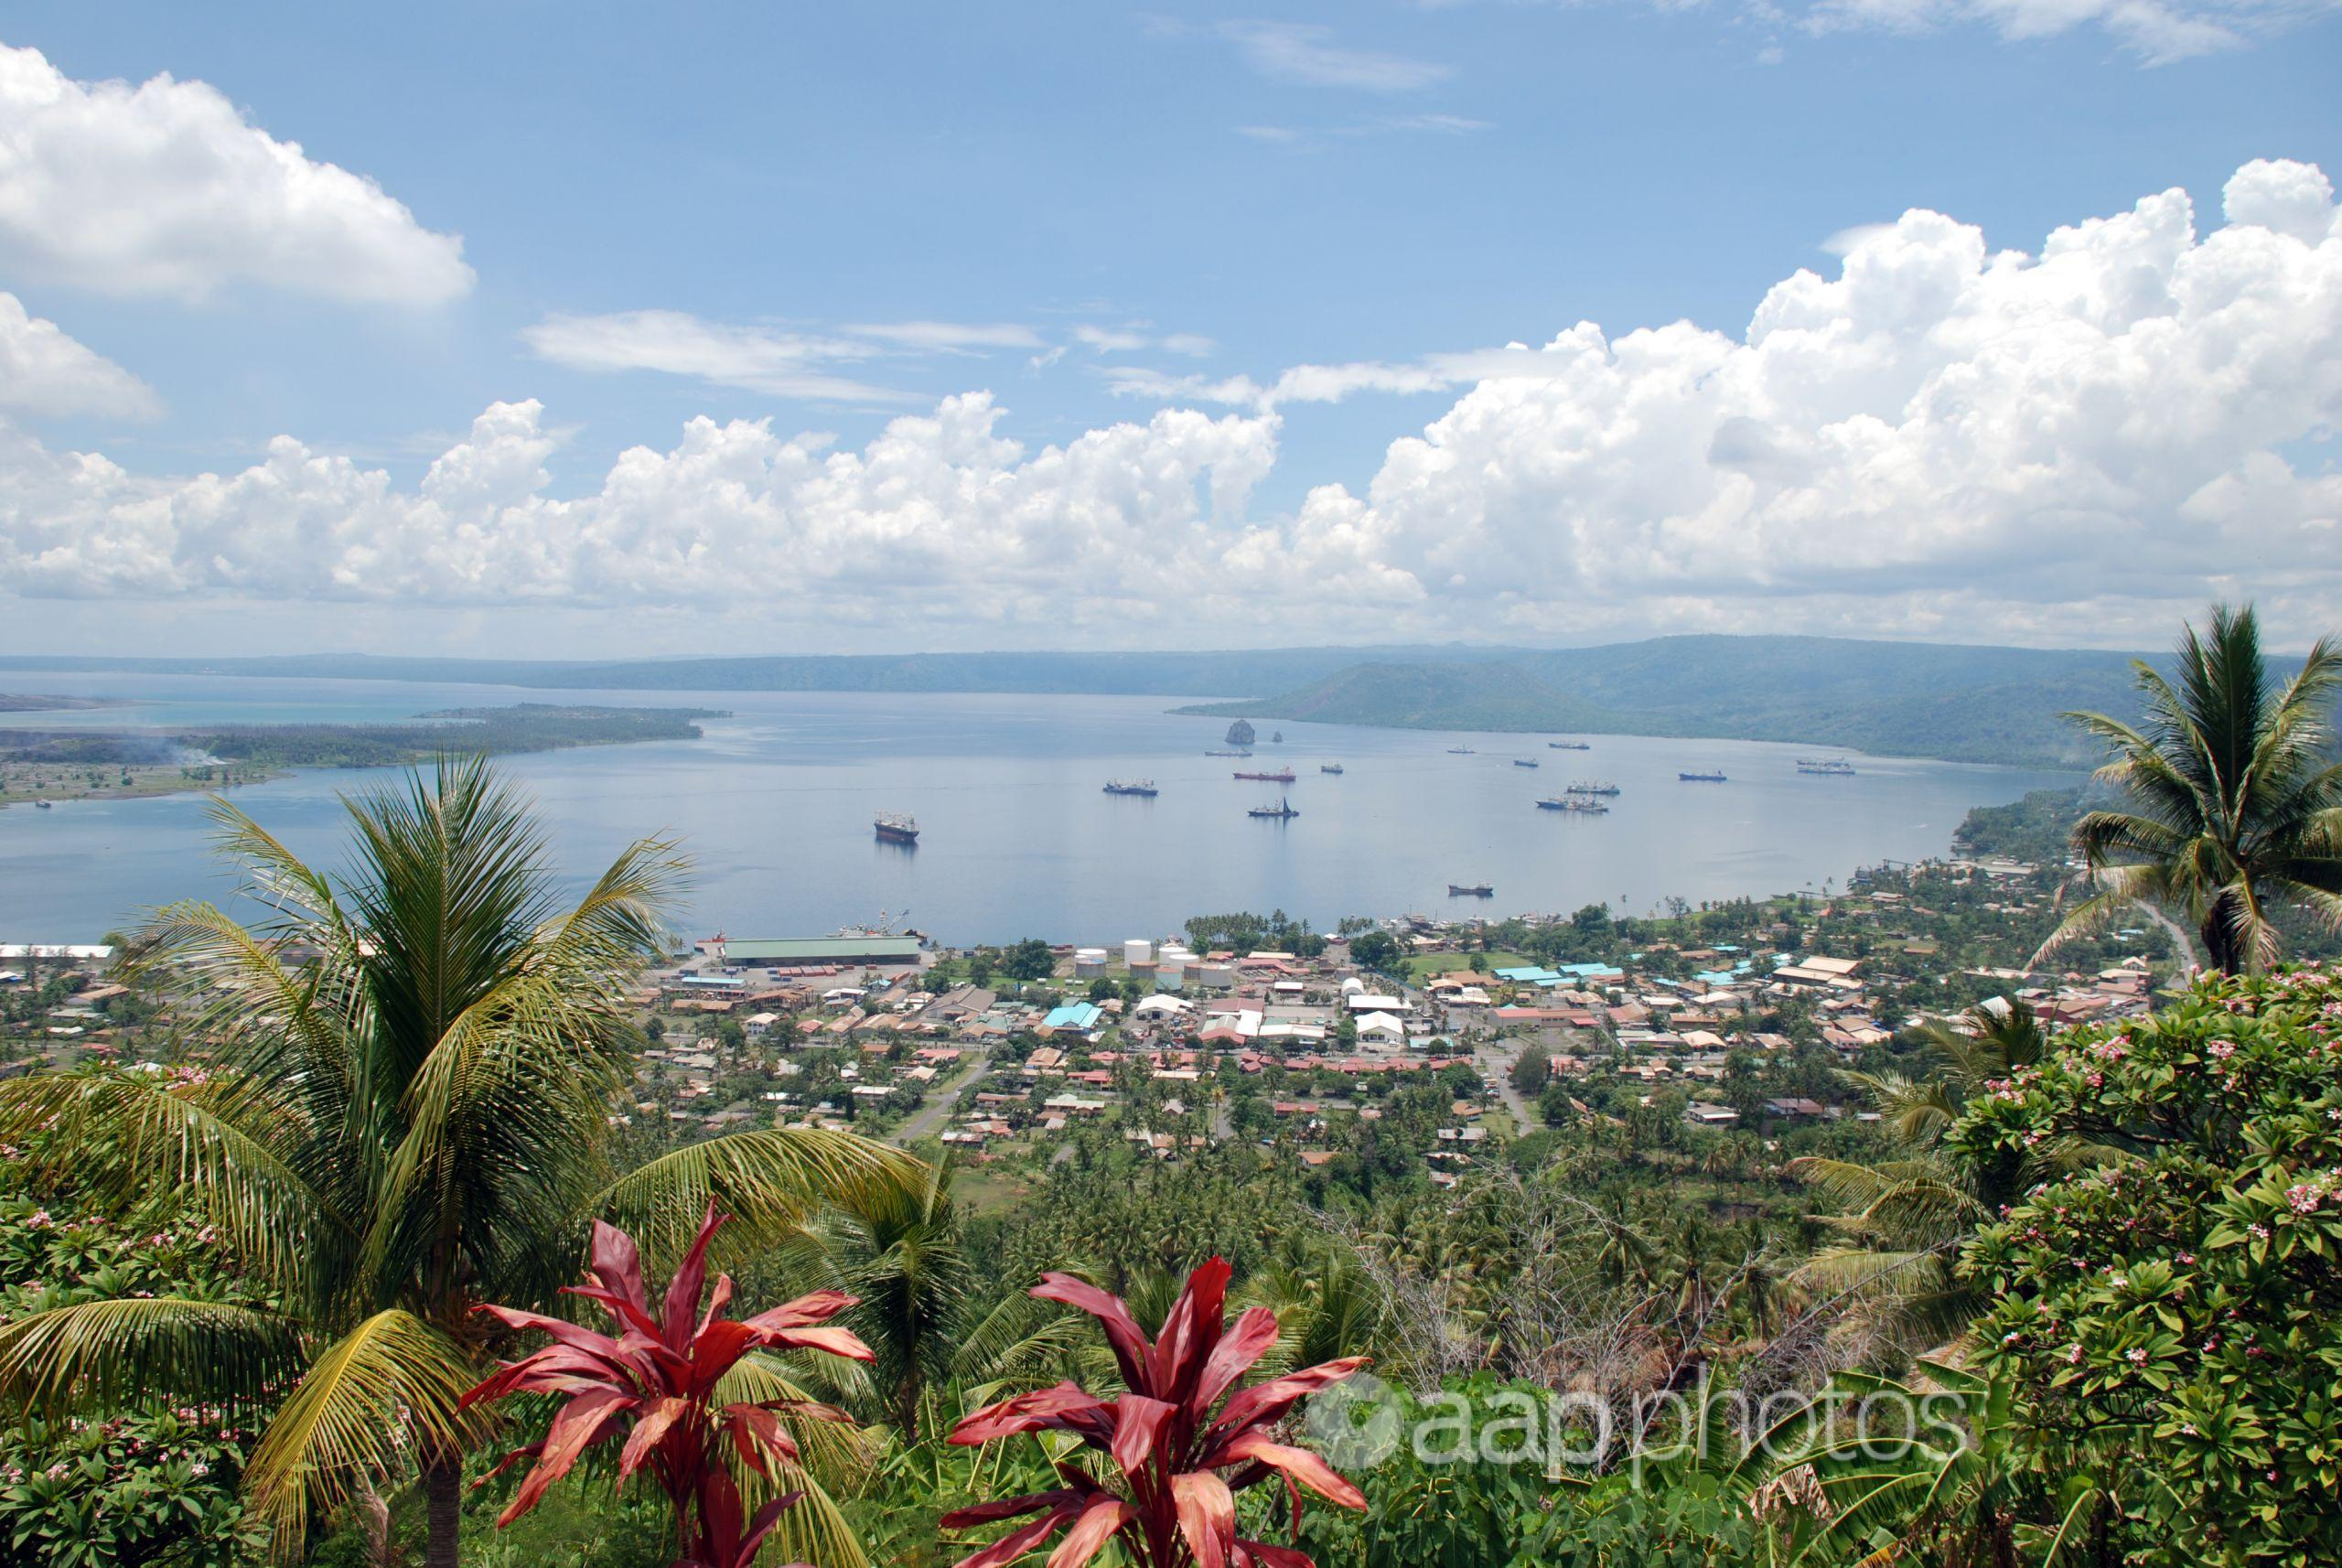 A view of the town of Rabaul, Papua New Guinea.